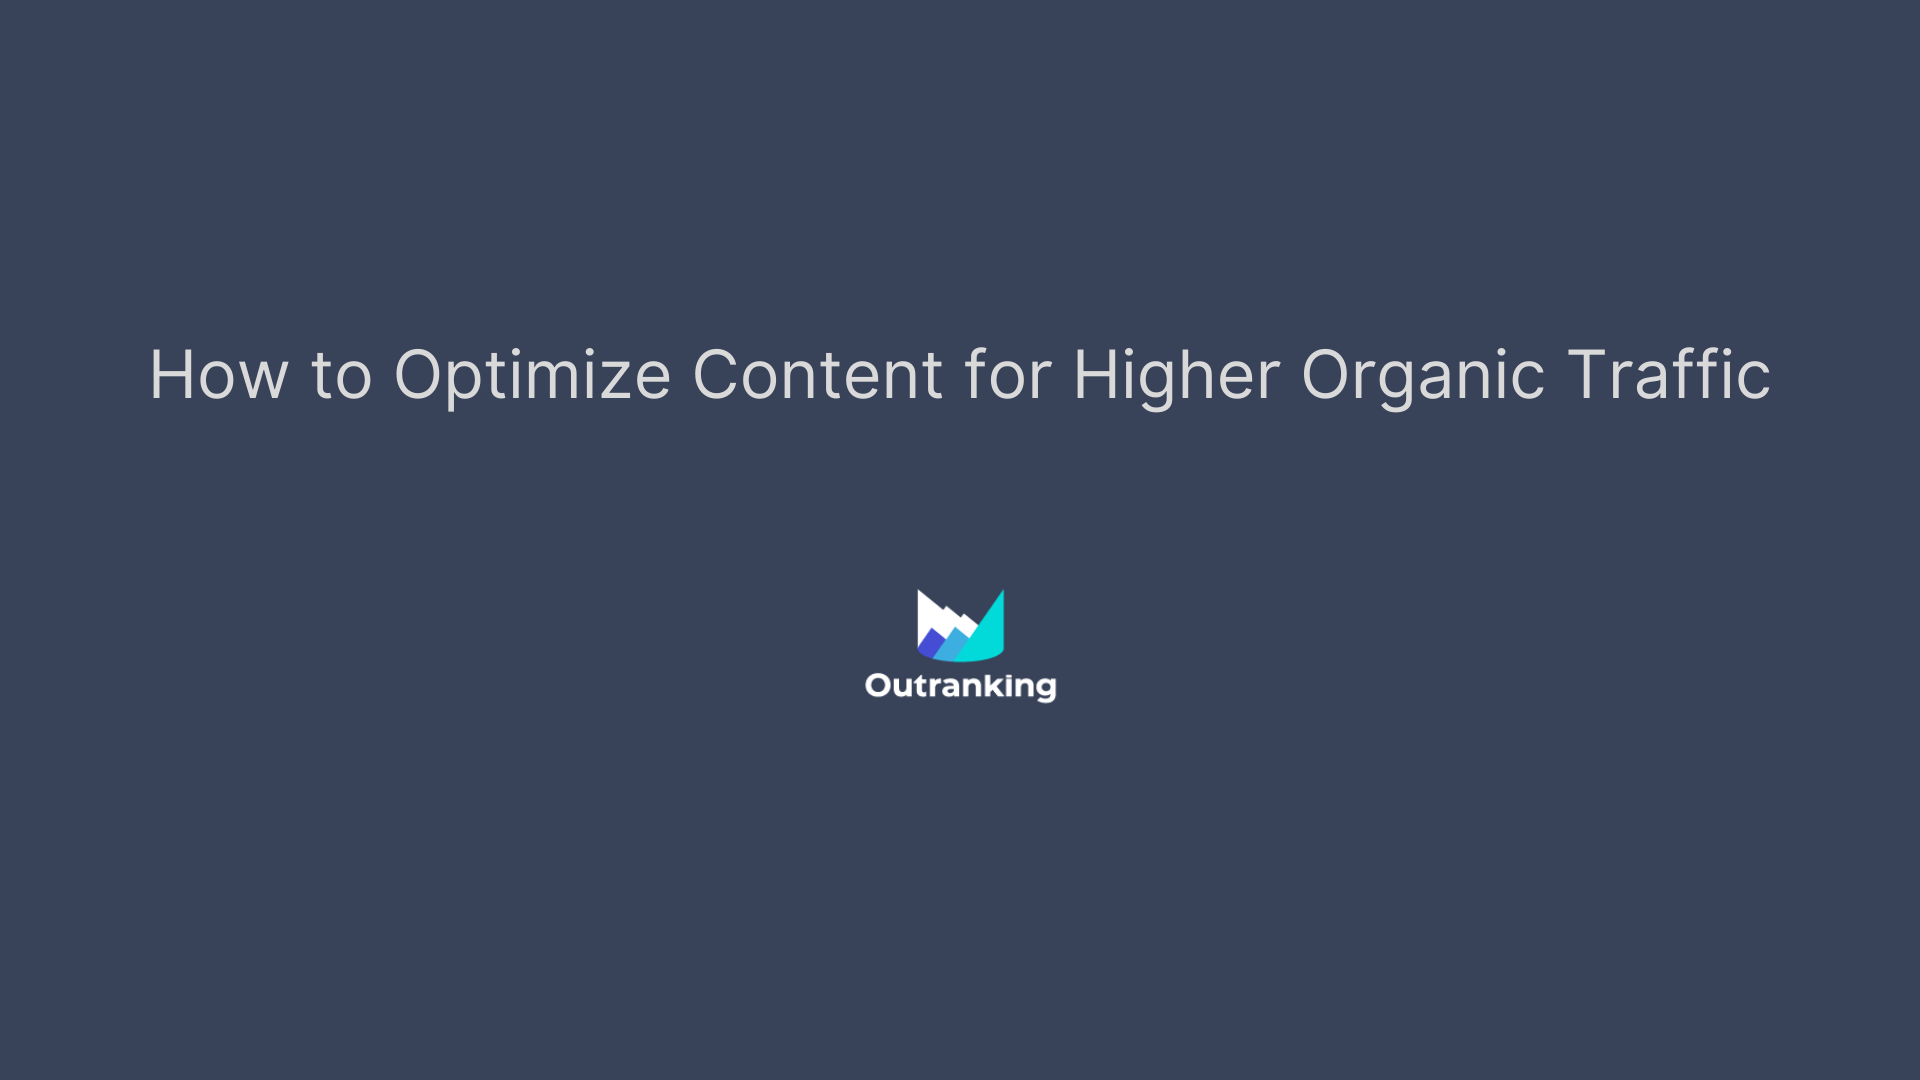 How to optimize content for higher organic traffic?